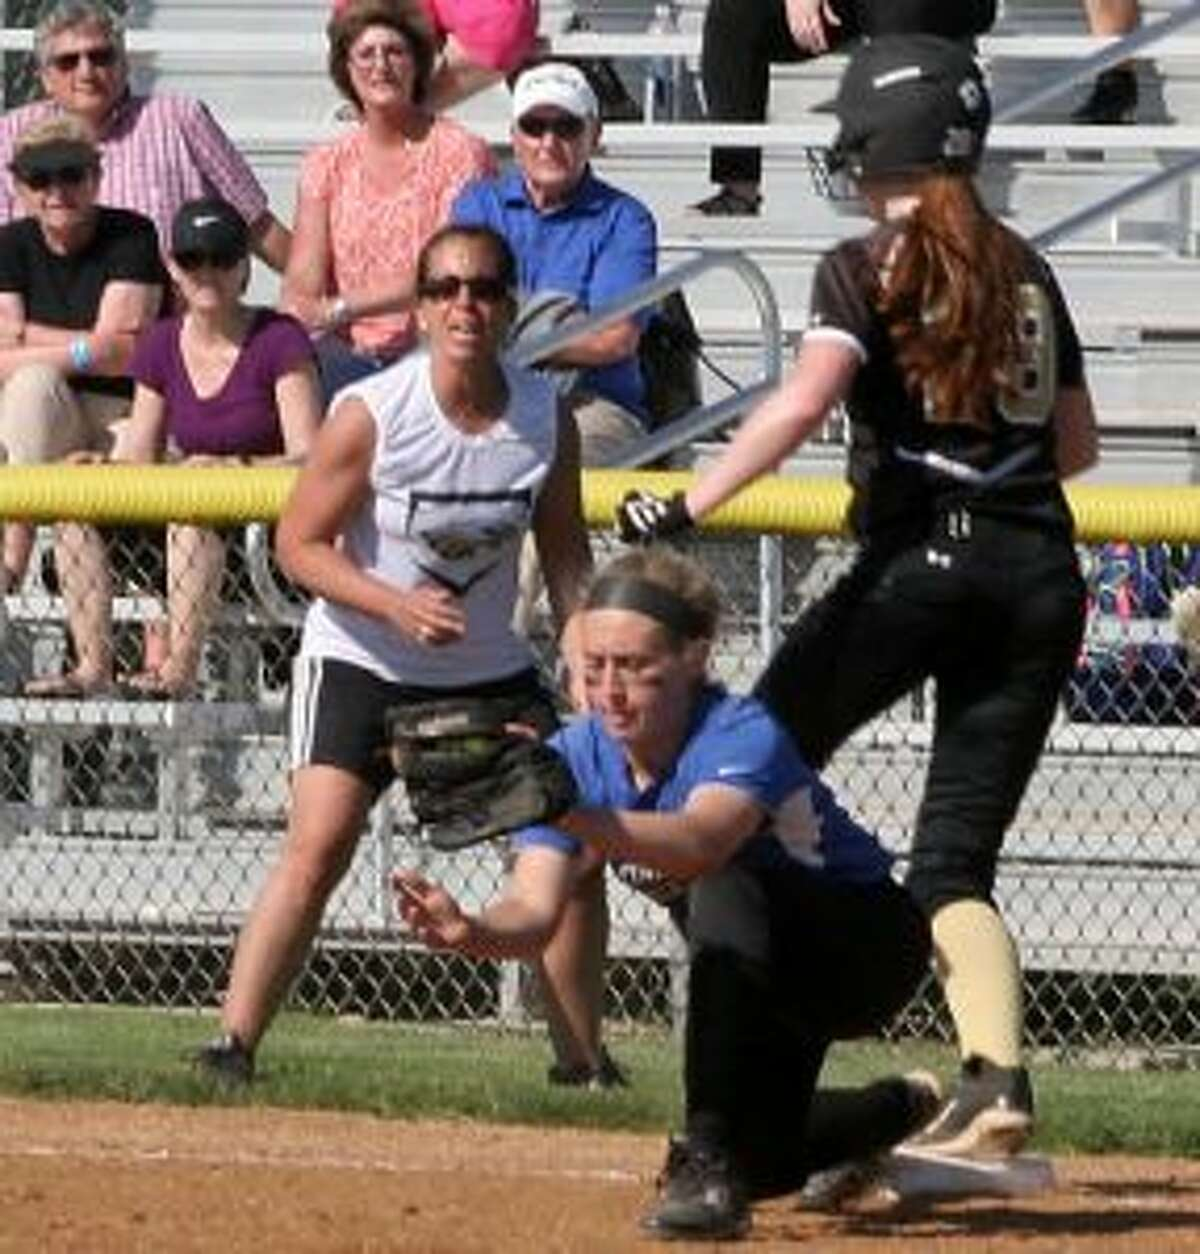 Darien High first baseman Kristen Picard had plenty of work, as Trumbull hit into 12 ground-ball outs.